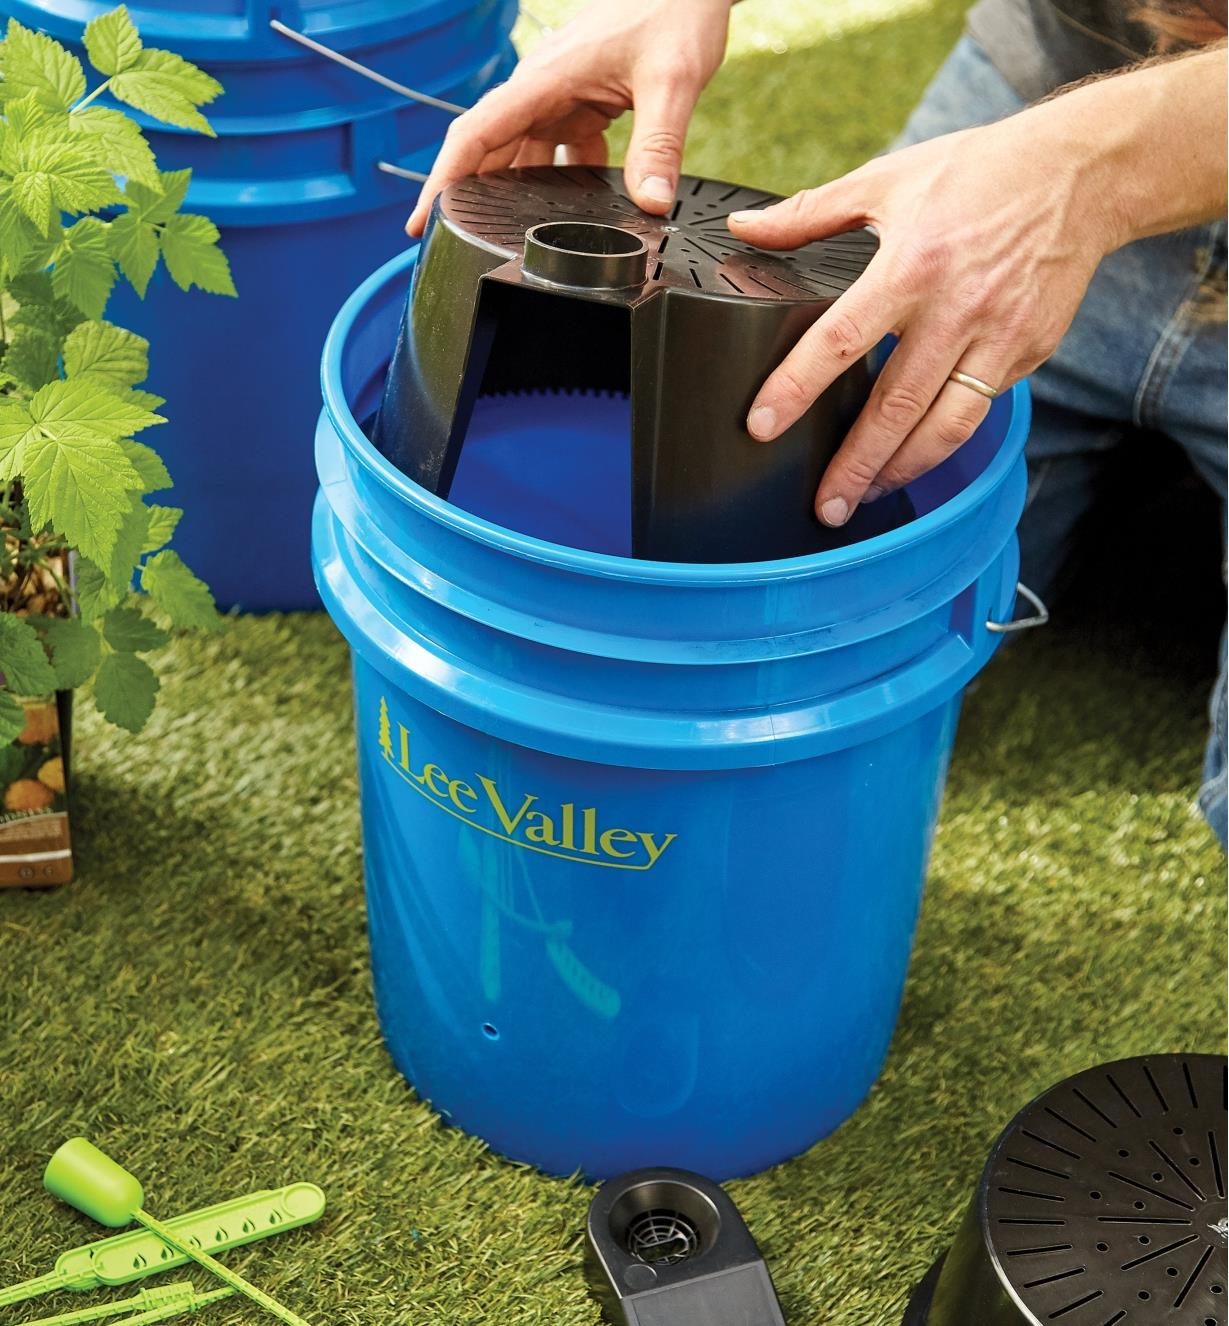 Lowering the reservoir of the GroBucket self-watering insert into a bucket